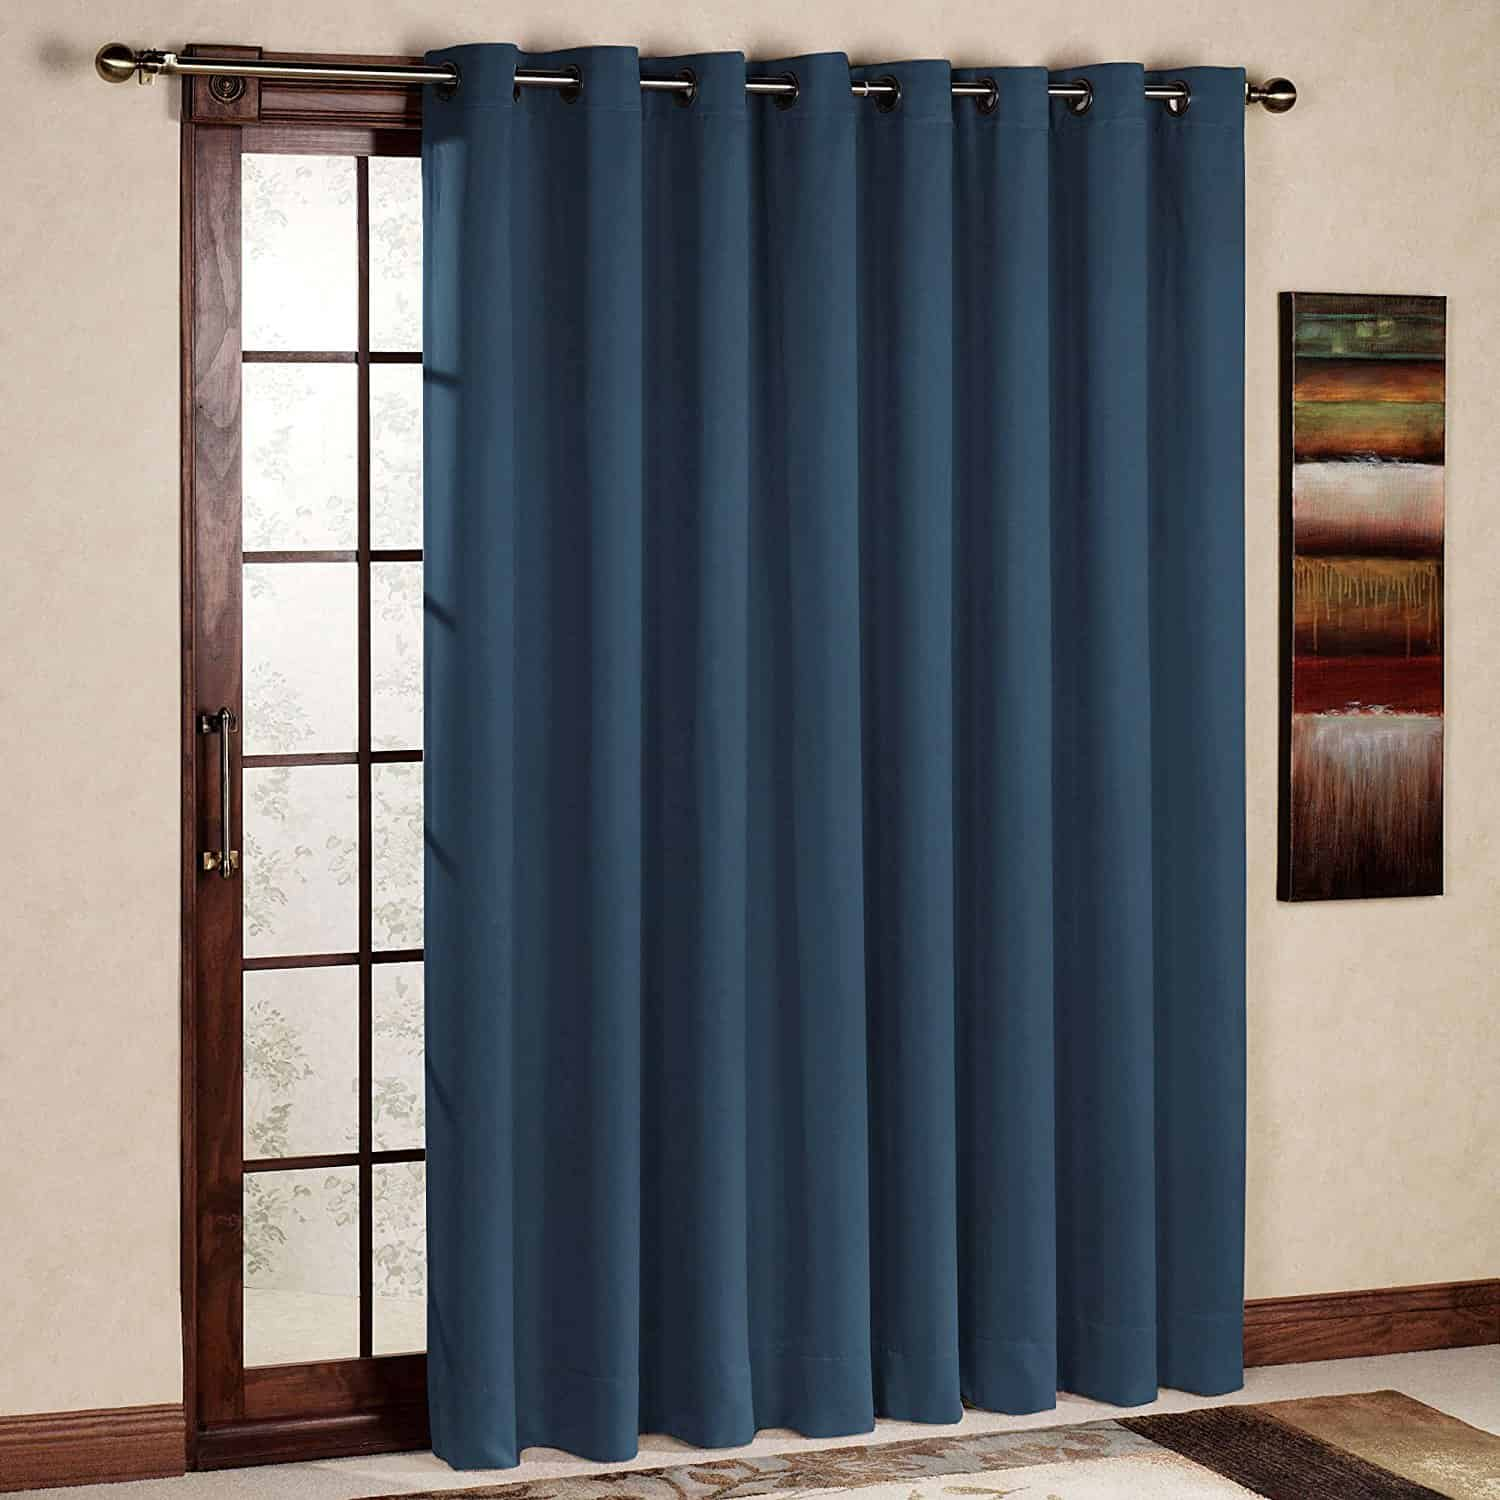 blue drapes the furnishings curtains opaque exclusive fabrics b boch semi w window home x treatments in n henna slider blackout depot curtain